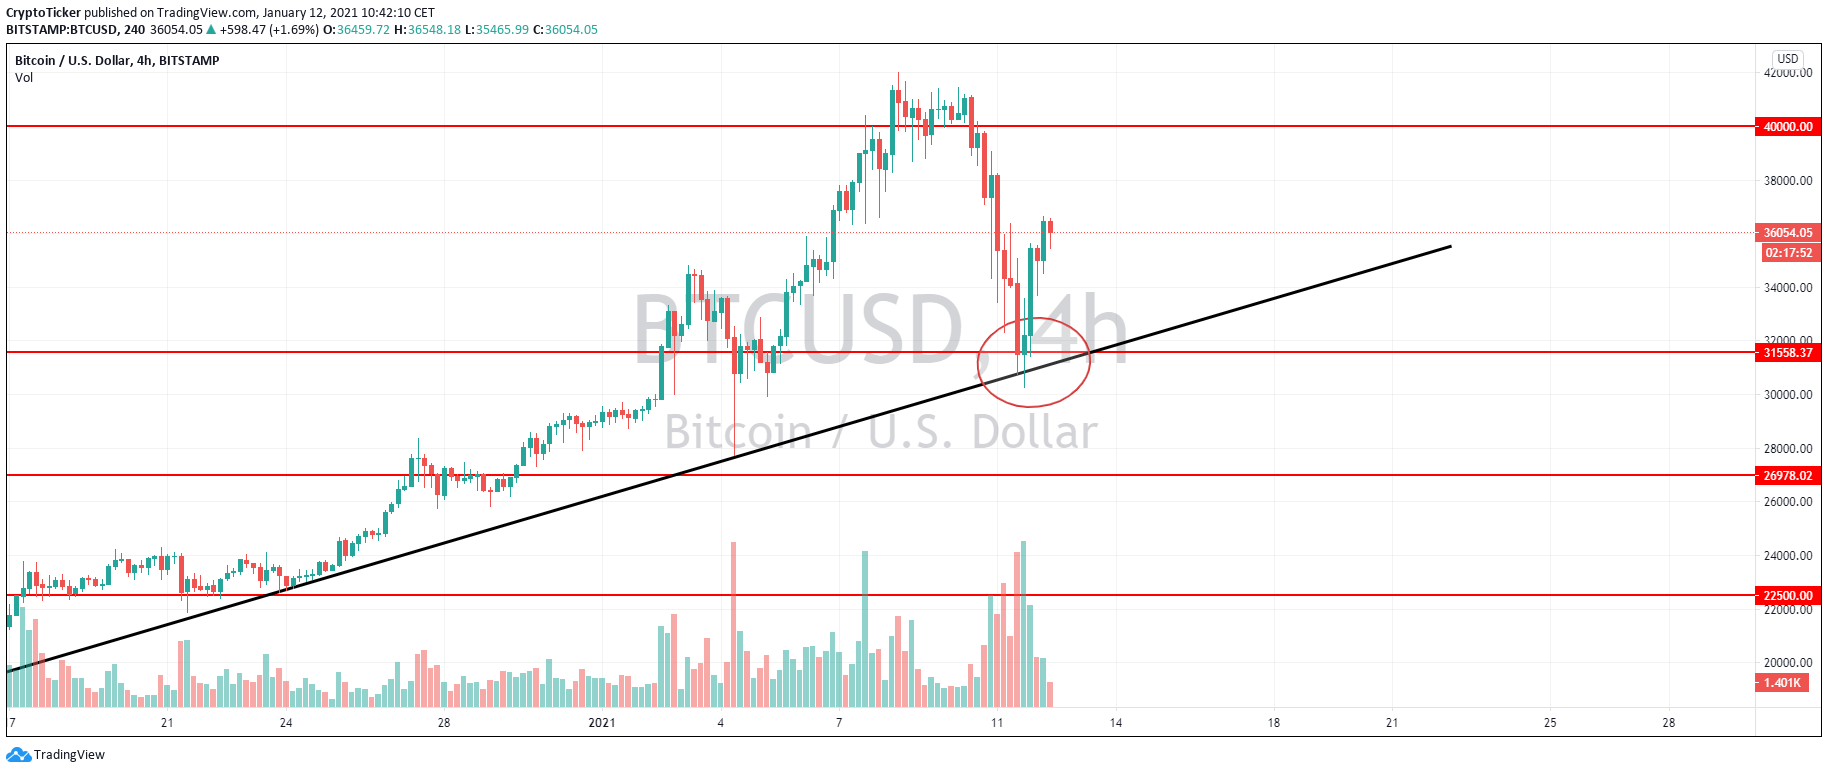 BTC/USD 4-hour chart showing a BTC retrace back to a previous predicted support area